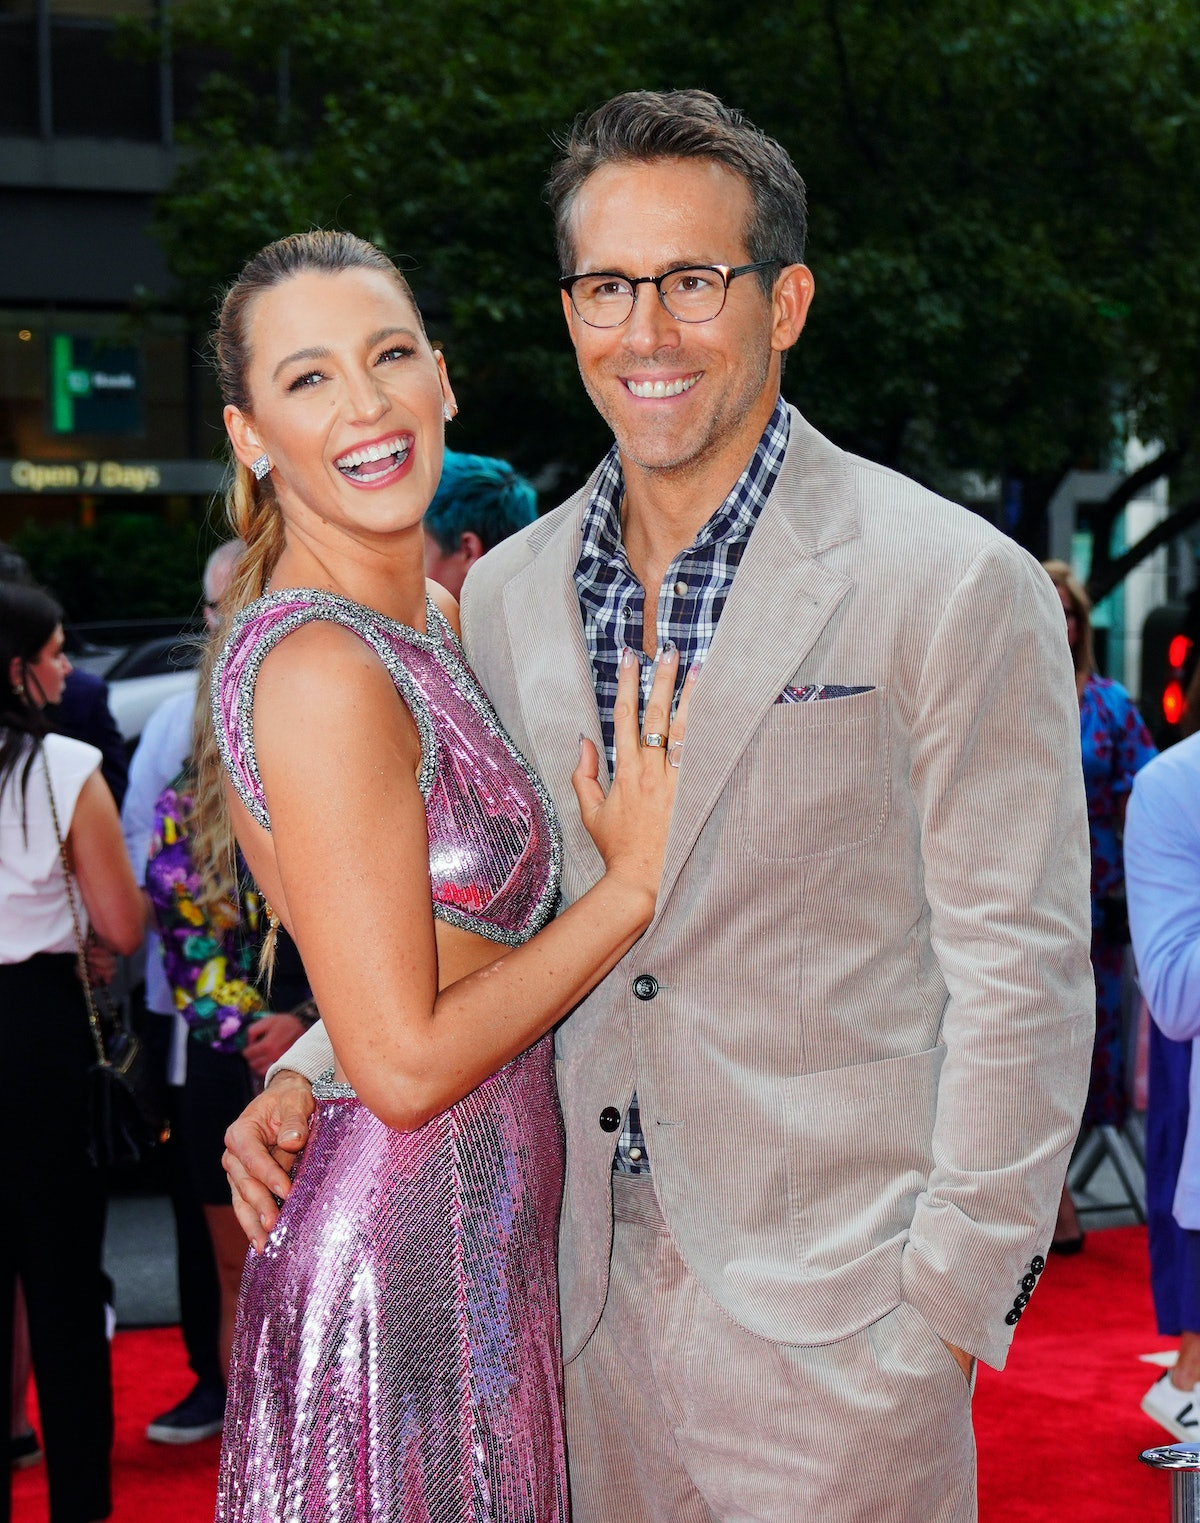 NEW YORK, NEW YORK - AUGUST 03: Blake Lively and Ryan Reynolds at 'Free Guy' Premiere on August 03, ...